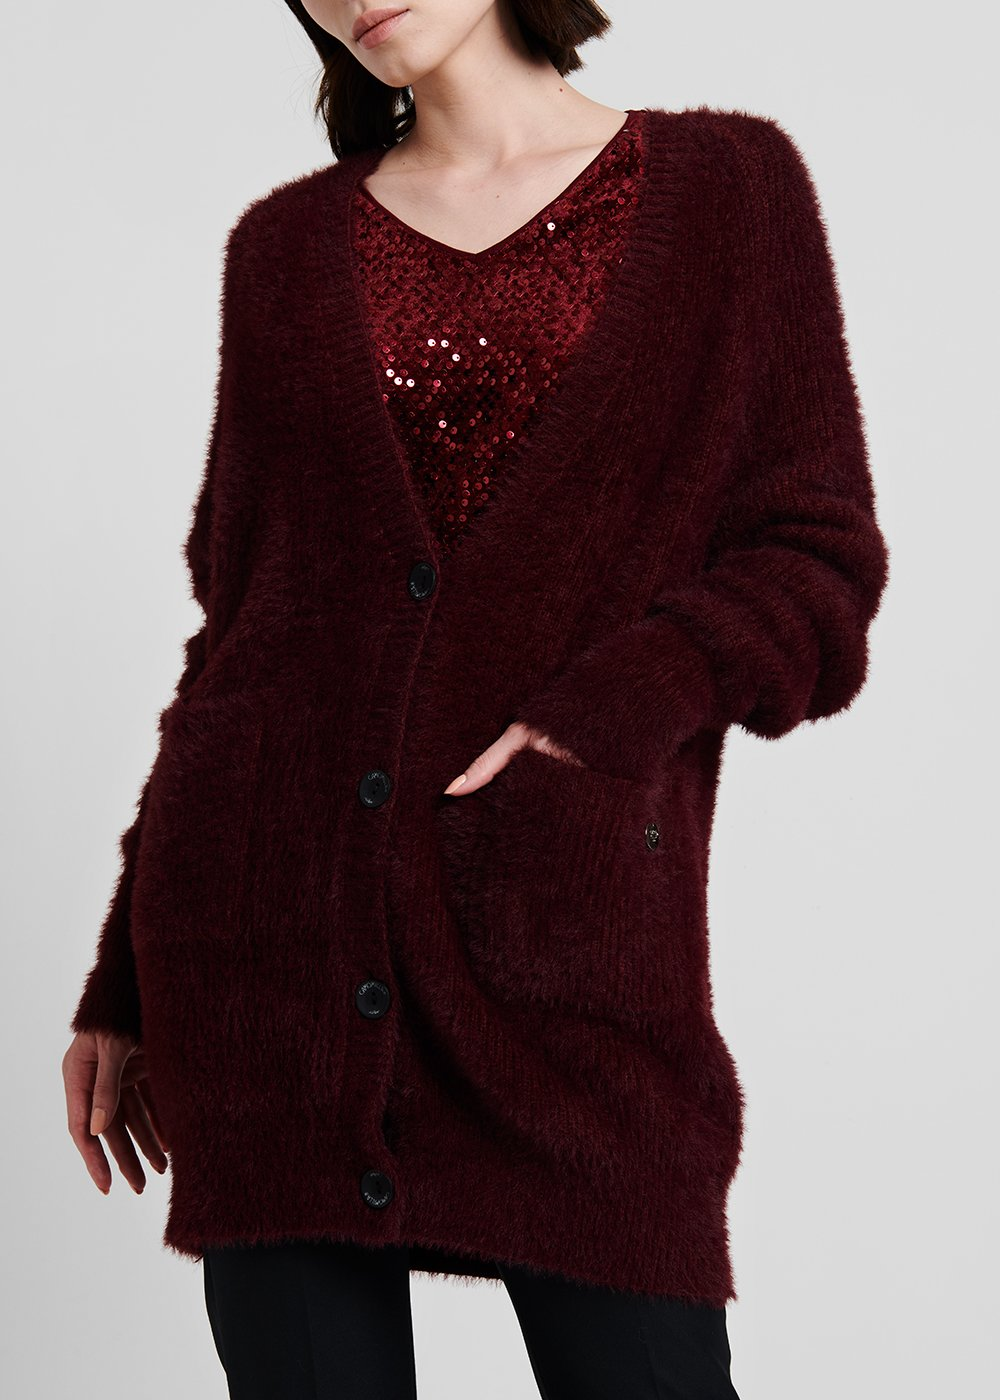 Cardigan with oversize volume in fur - effect fabric - Black cherry - Woman